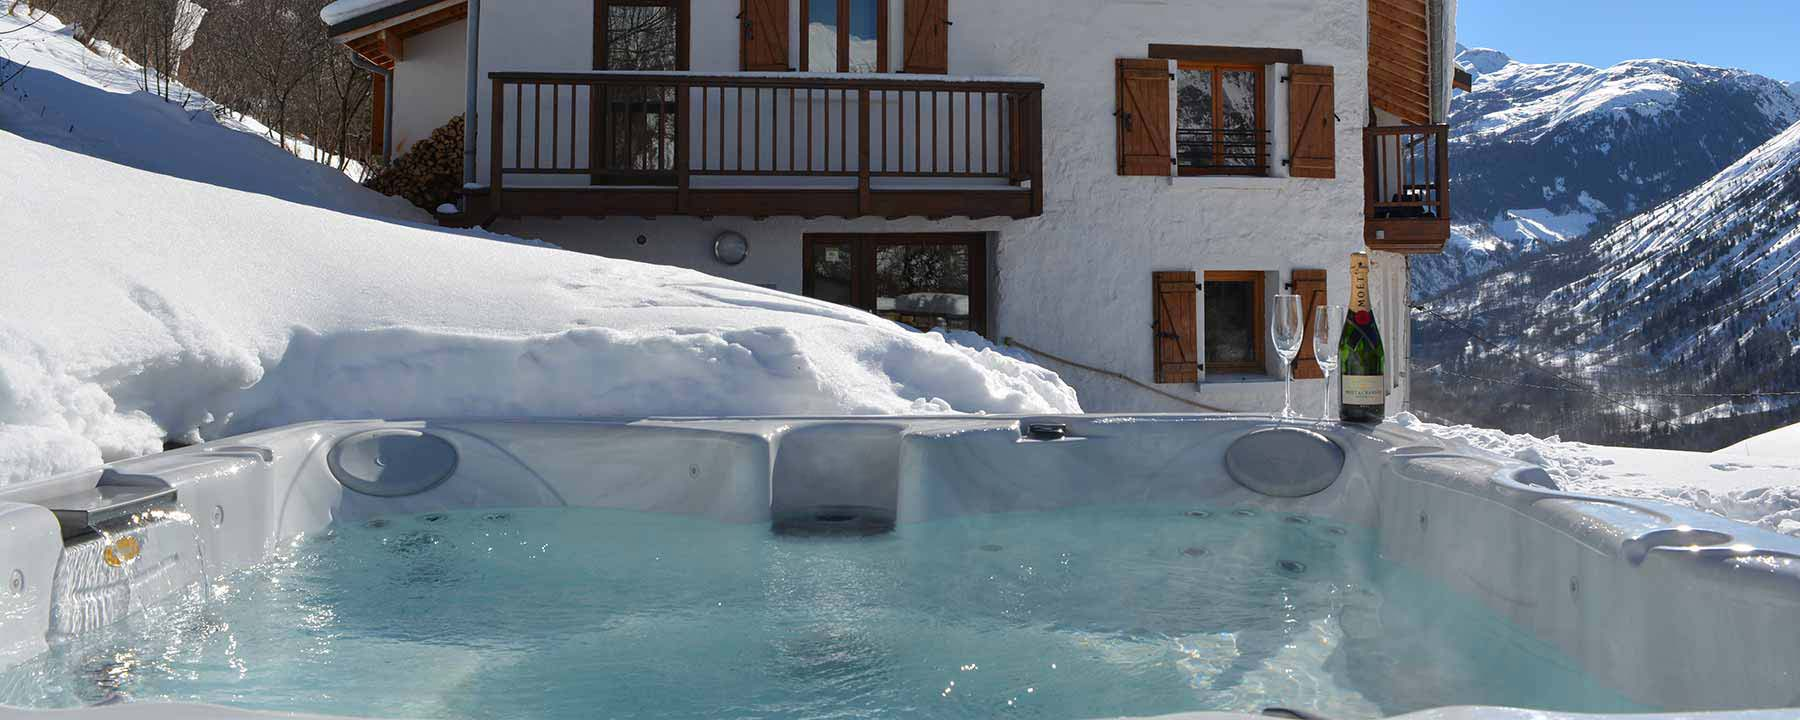 Chillout and relax in our outdoor Jacuzzi